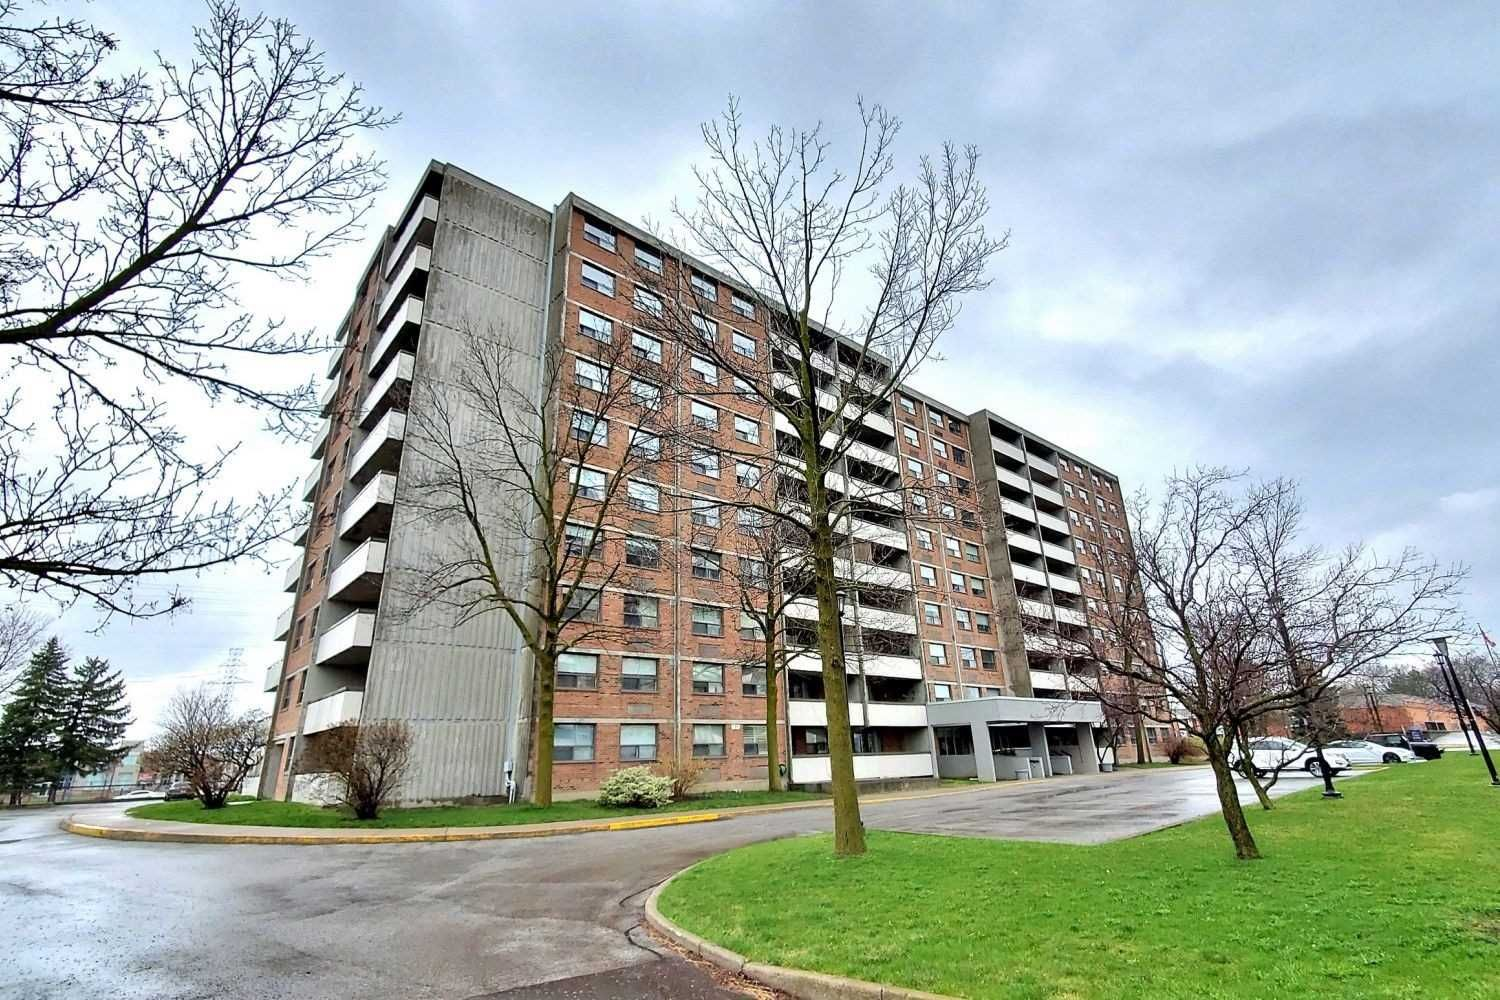 Main Photo: 801 20 William Roe Boulevard in Newmarket: Central Newmarket Condo for sale : MLS®# N4751984